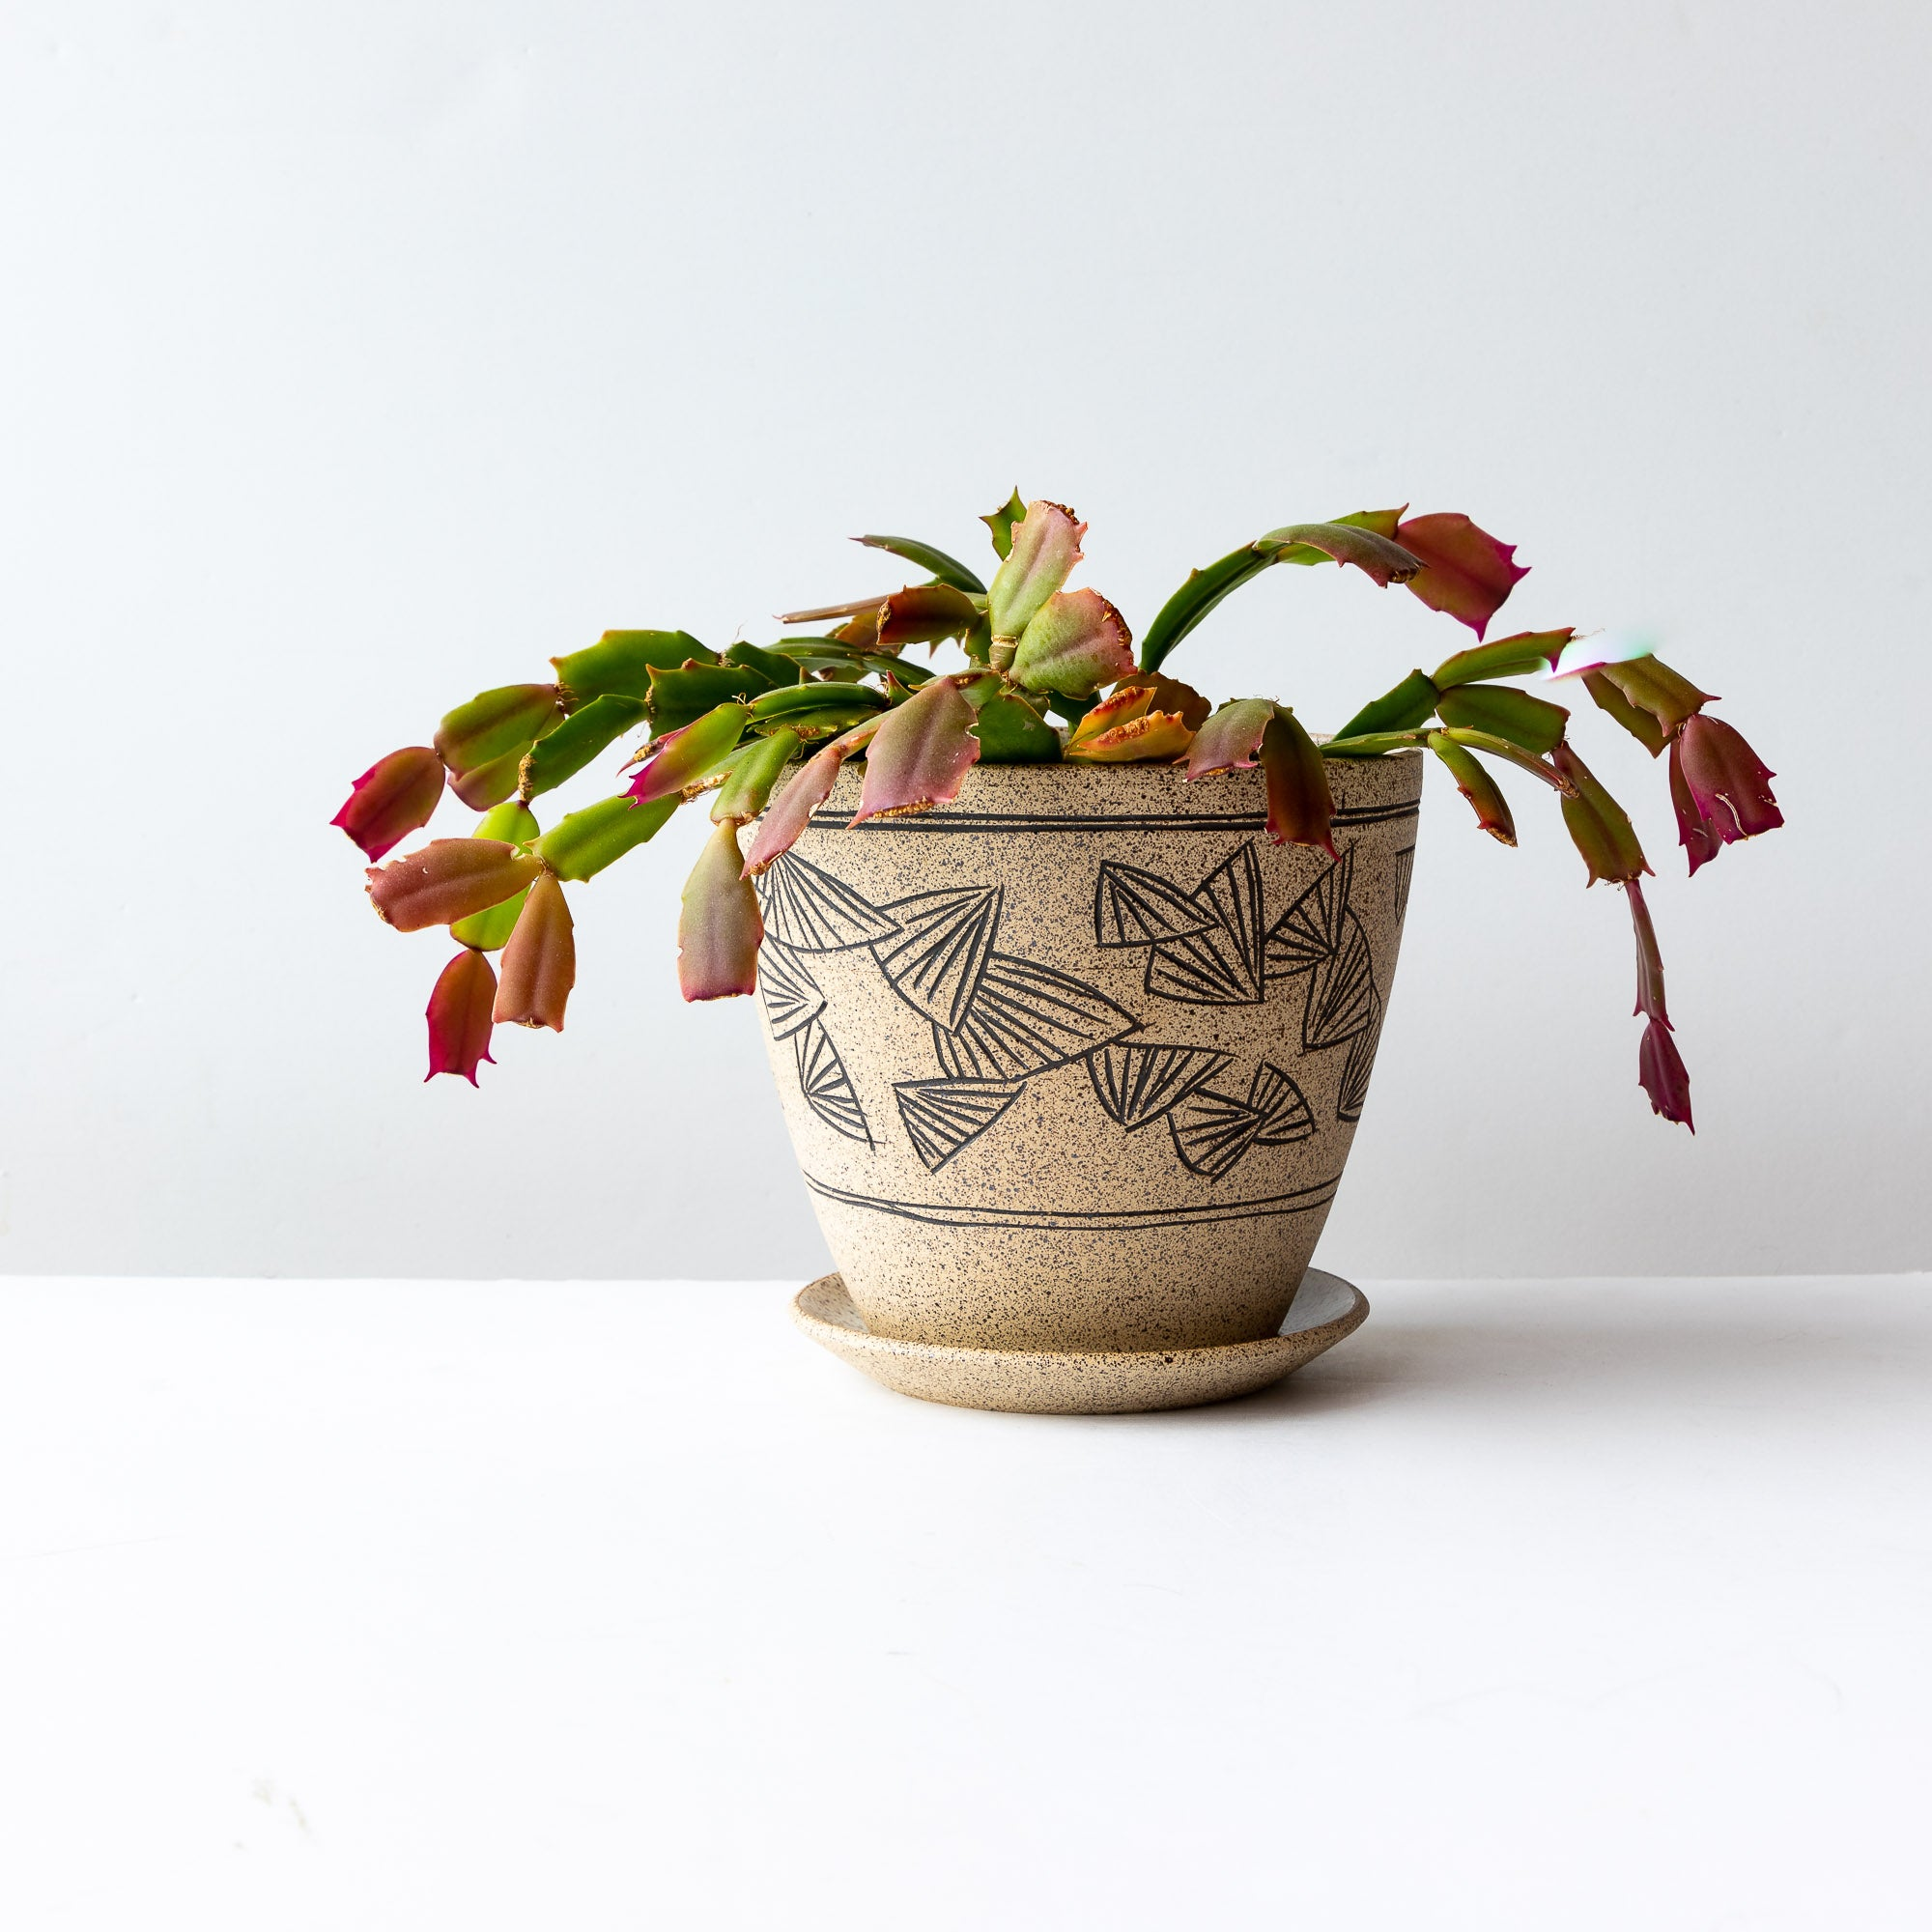 Handmade Mishima Stoneware Plant Pot With Saucer - Shown With Plant - Sold by Chic & Basta